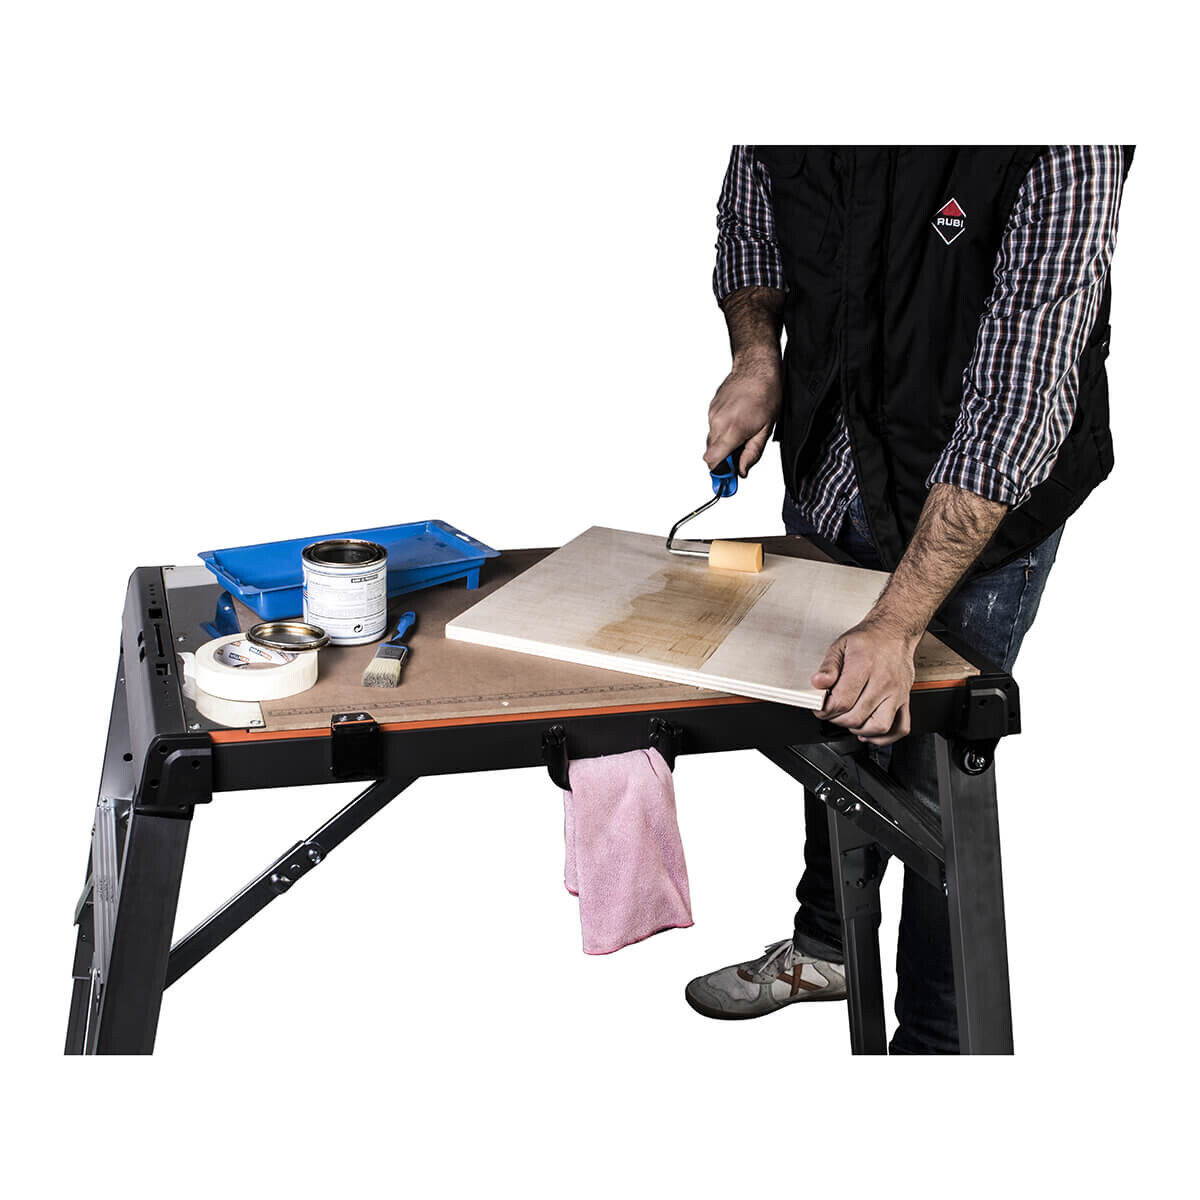 Staining Wood on Rubi 4-in-1 Work Table